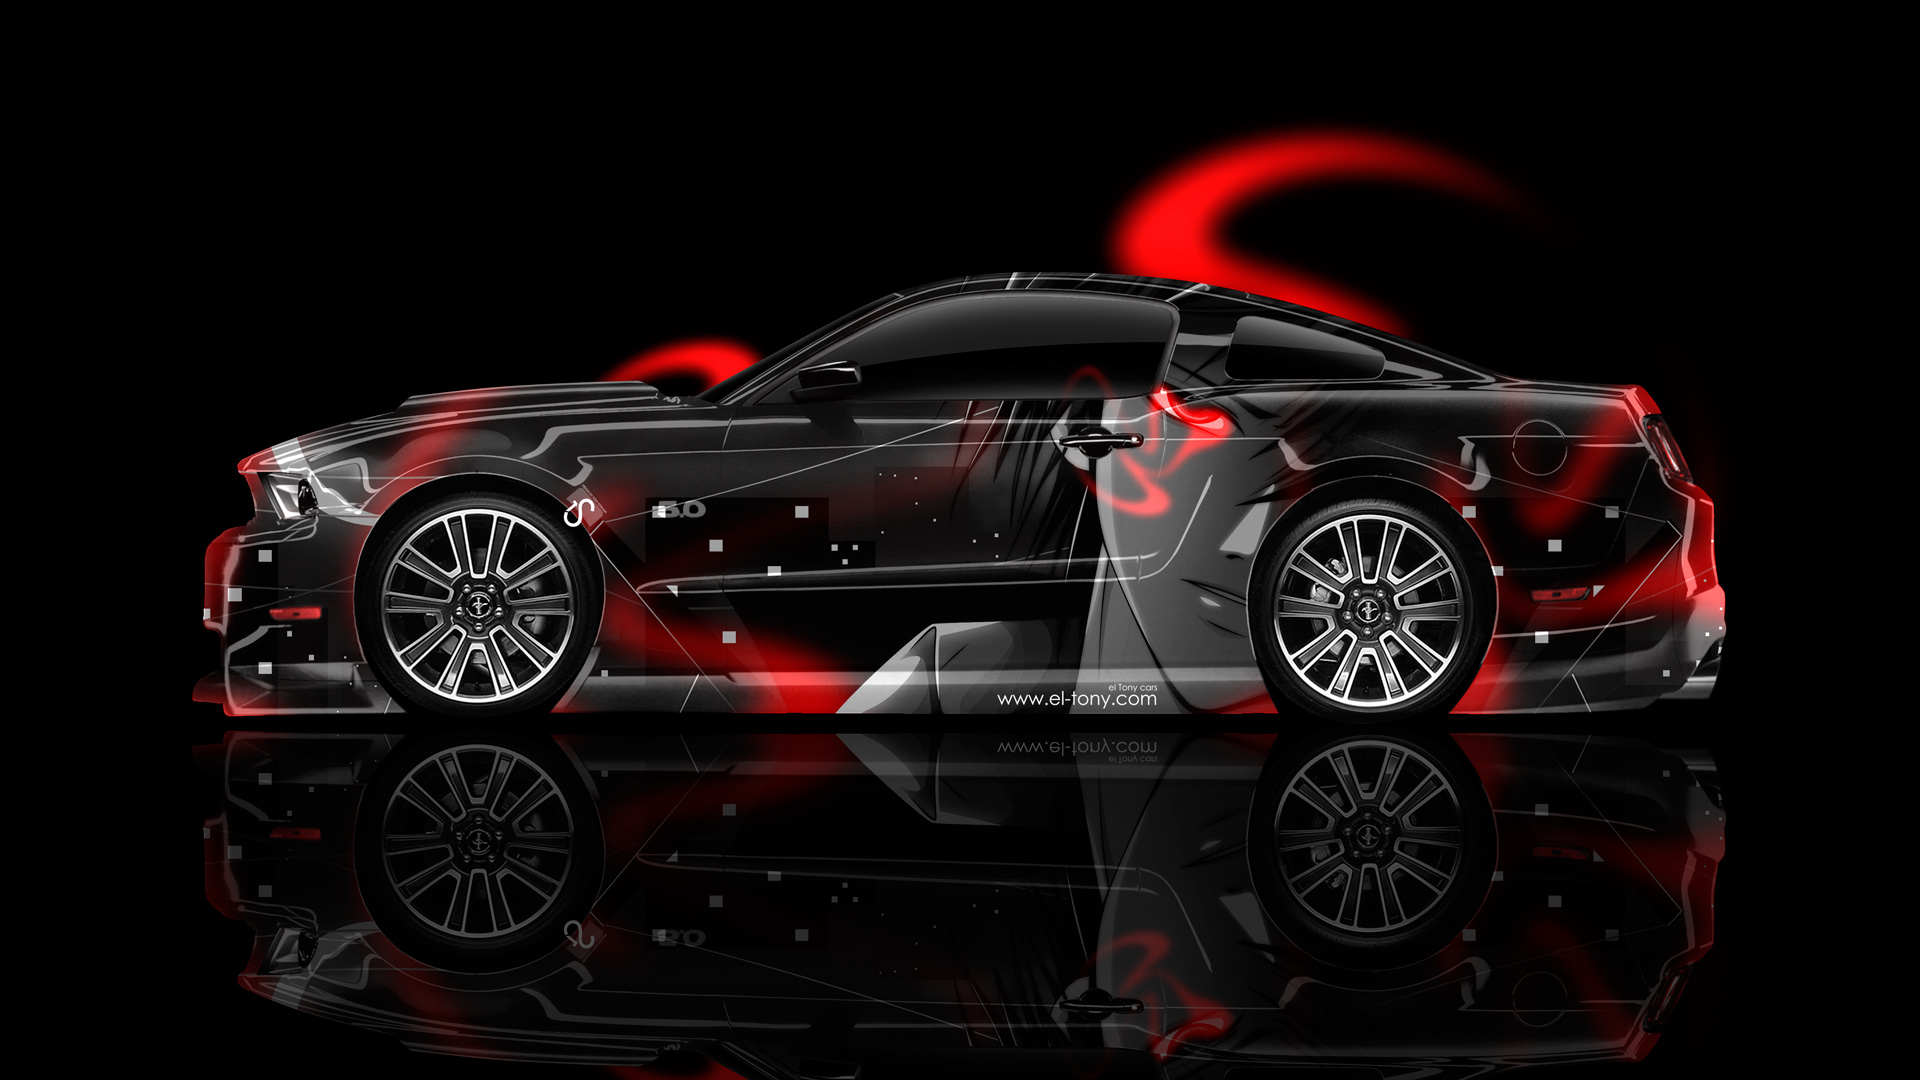 Ford Mustang Gt Side Anime Aerography Car 2014 El Tony